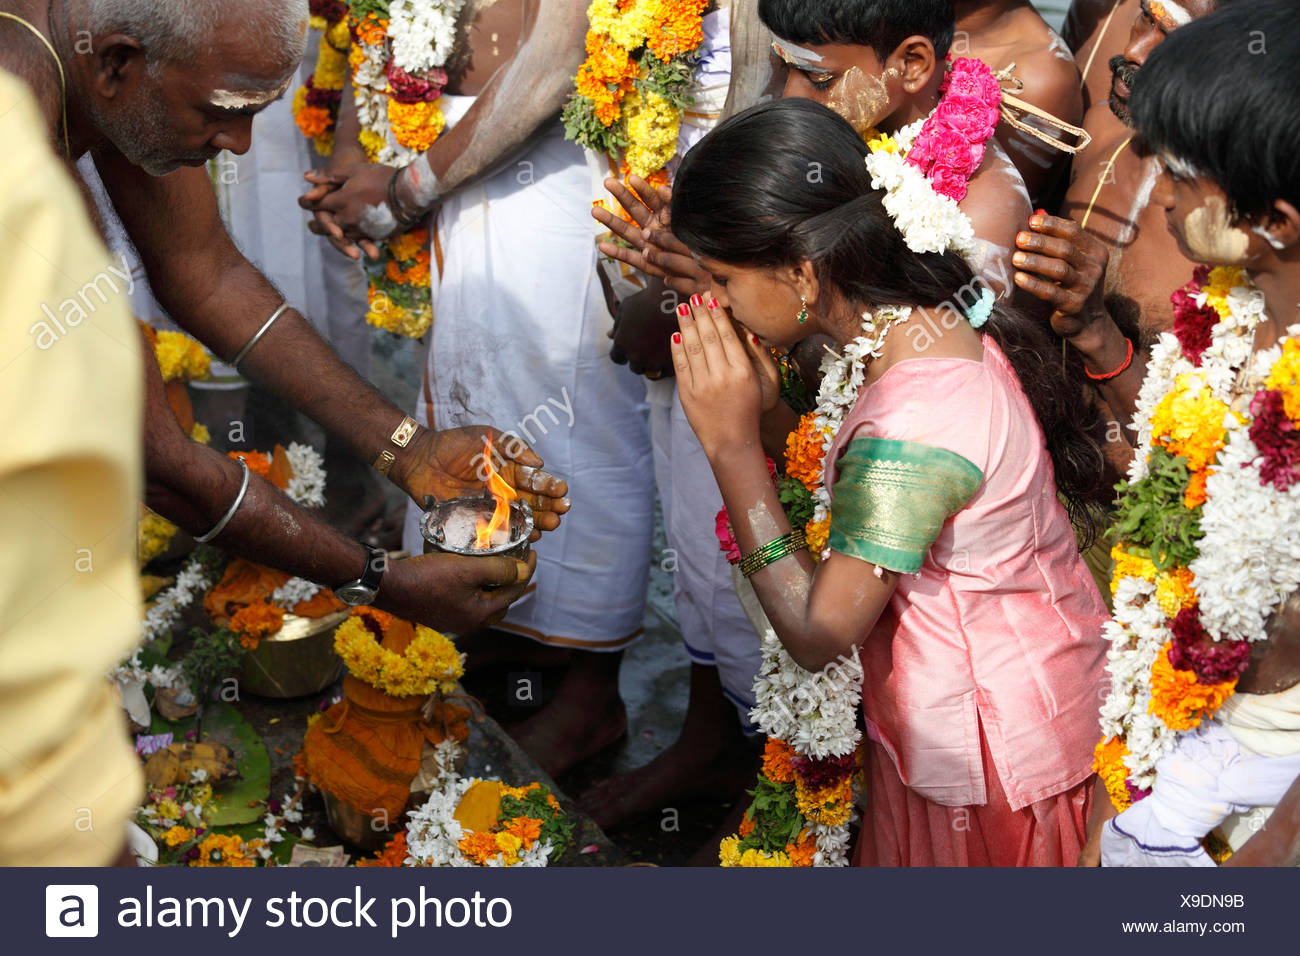 Holy Fire, Thaipusam festival in Tenkasi, Tamil Nadu, Tamilnadu, South India, India, Asia Stock Photo